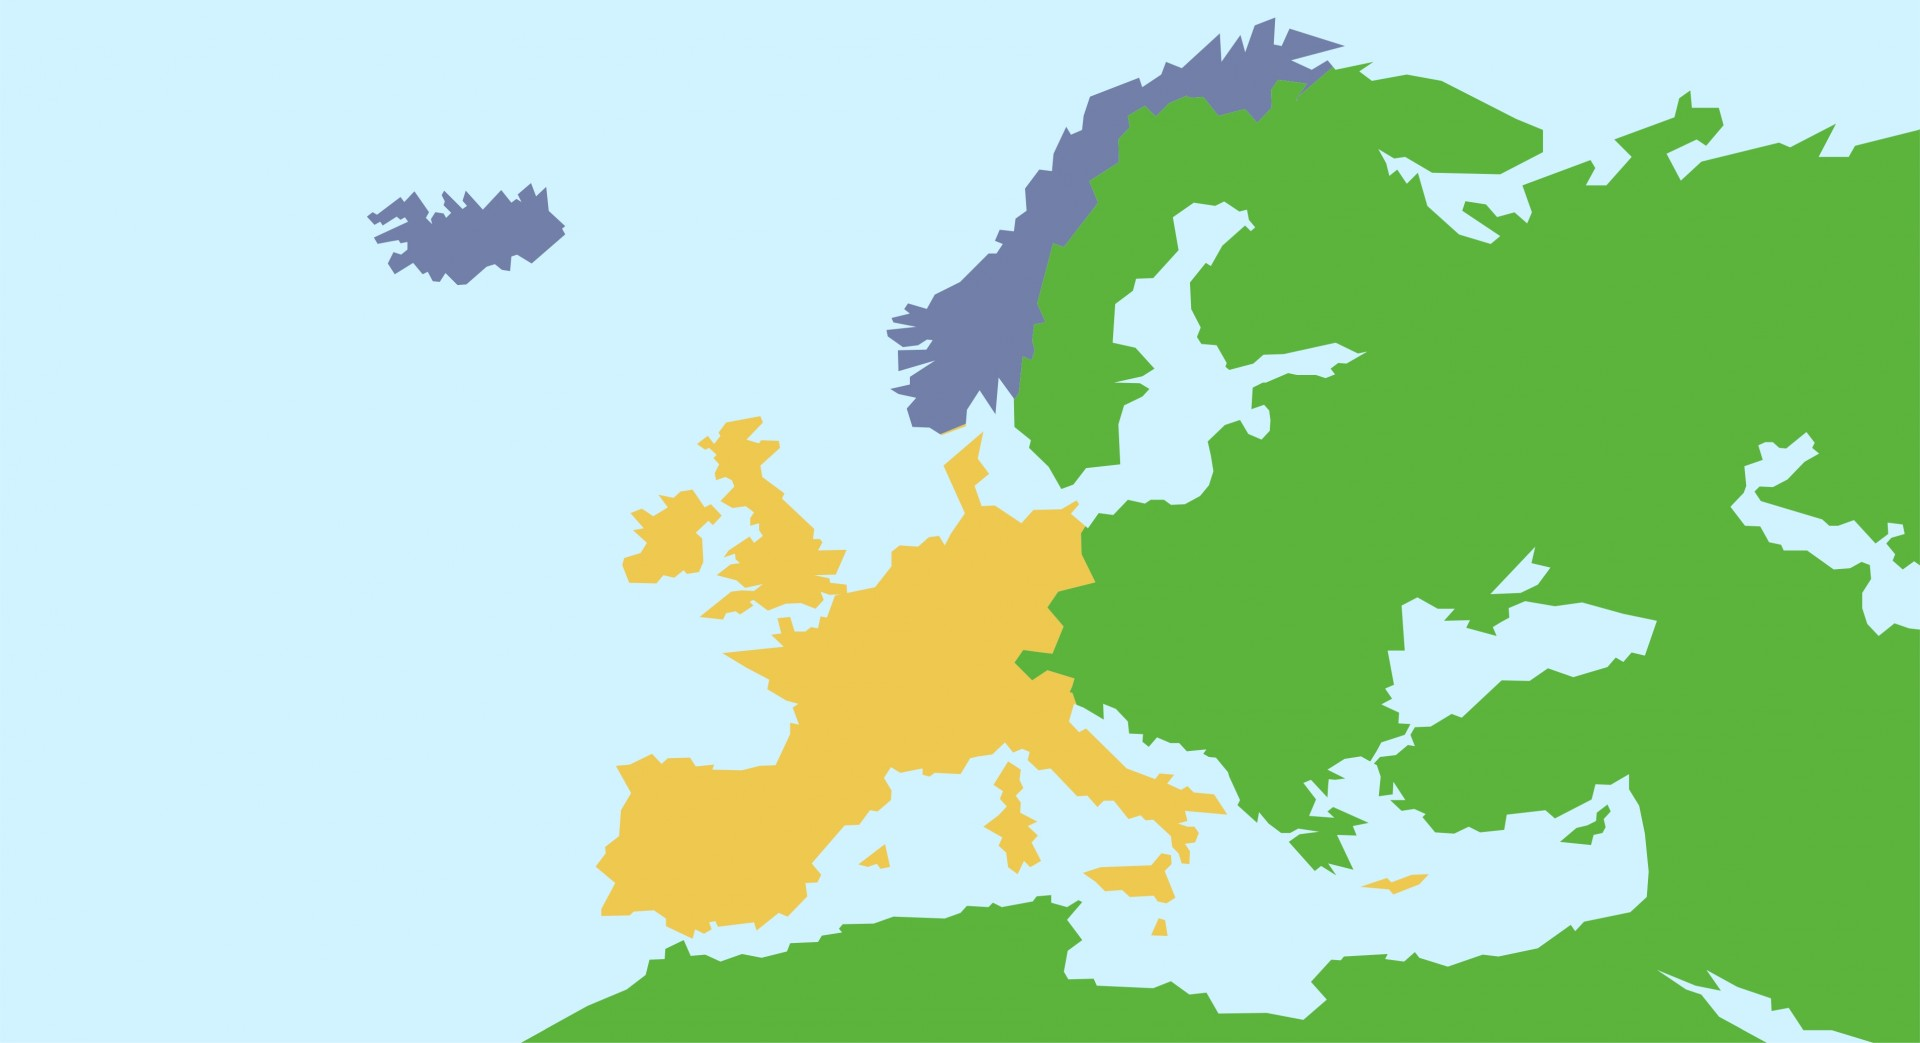 Europe clipart. Map of free stock